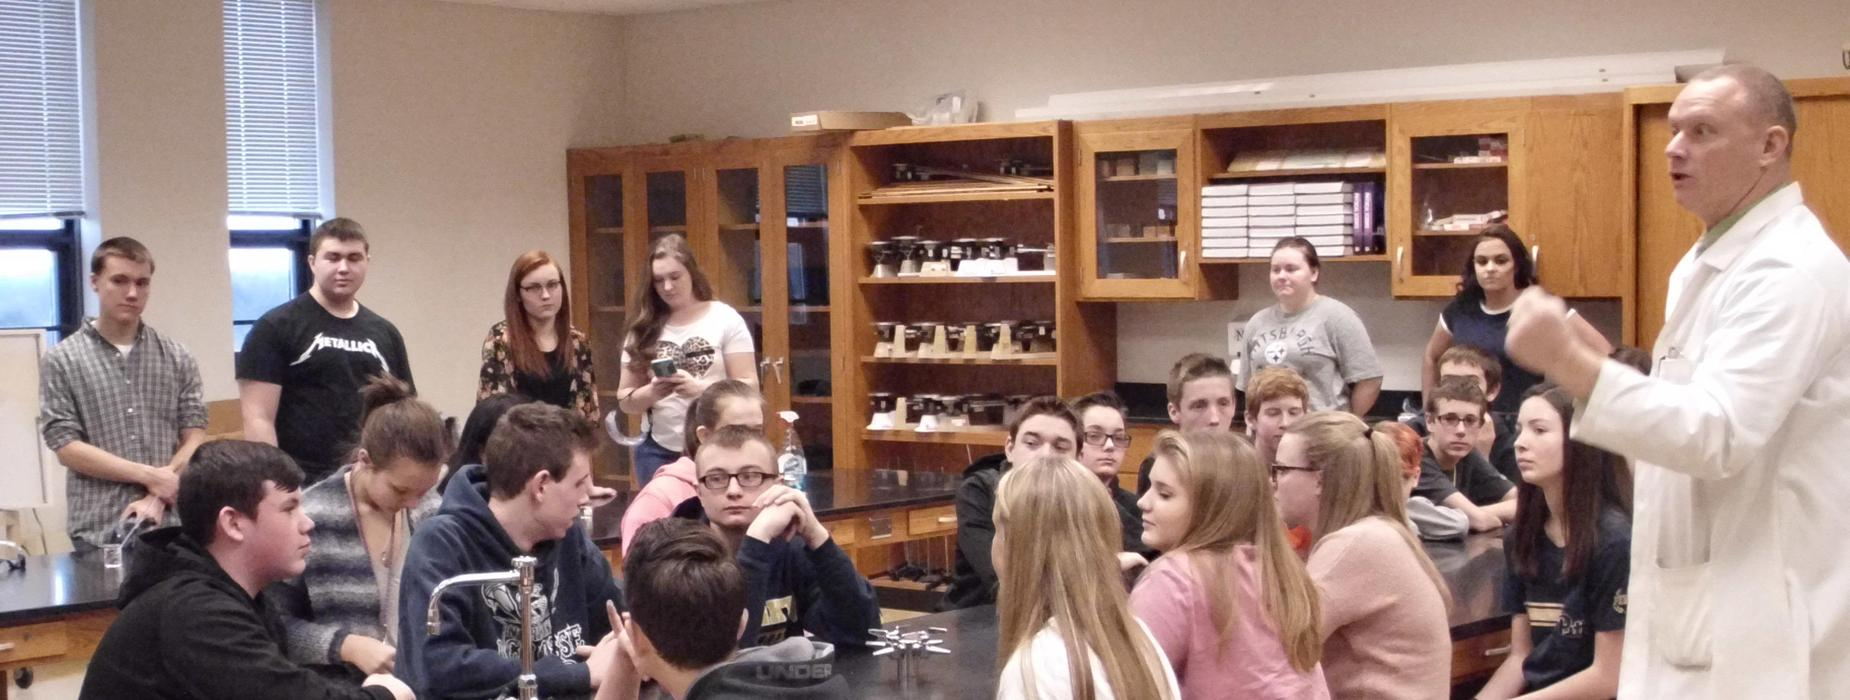 STEM Day at Norwin Middle School